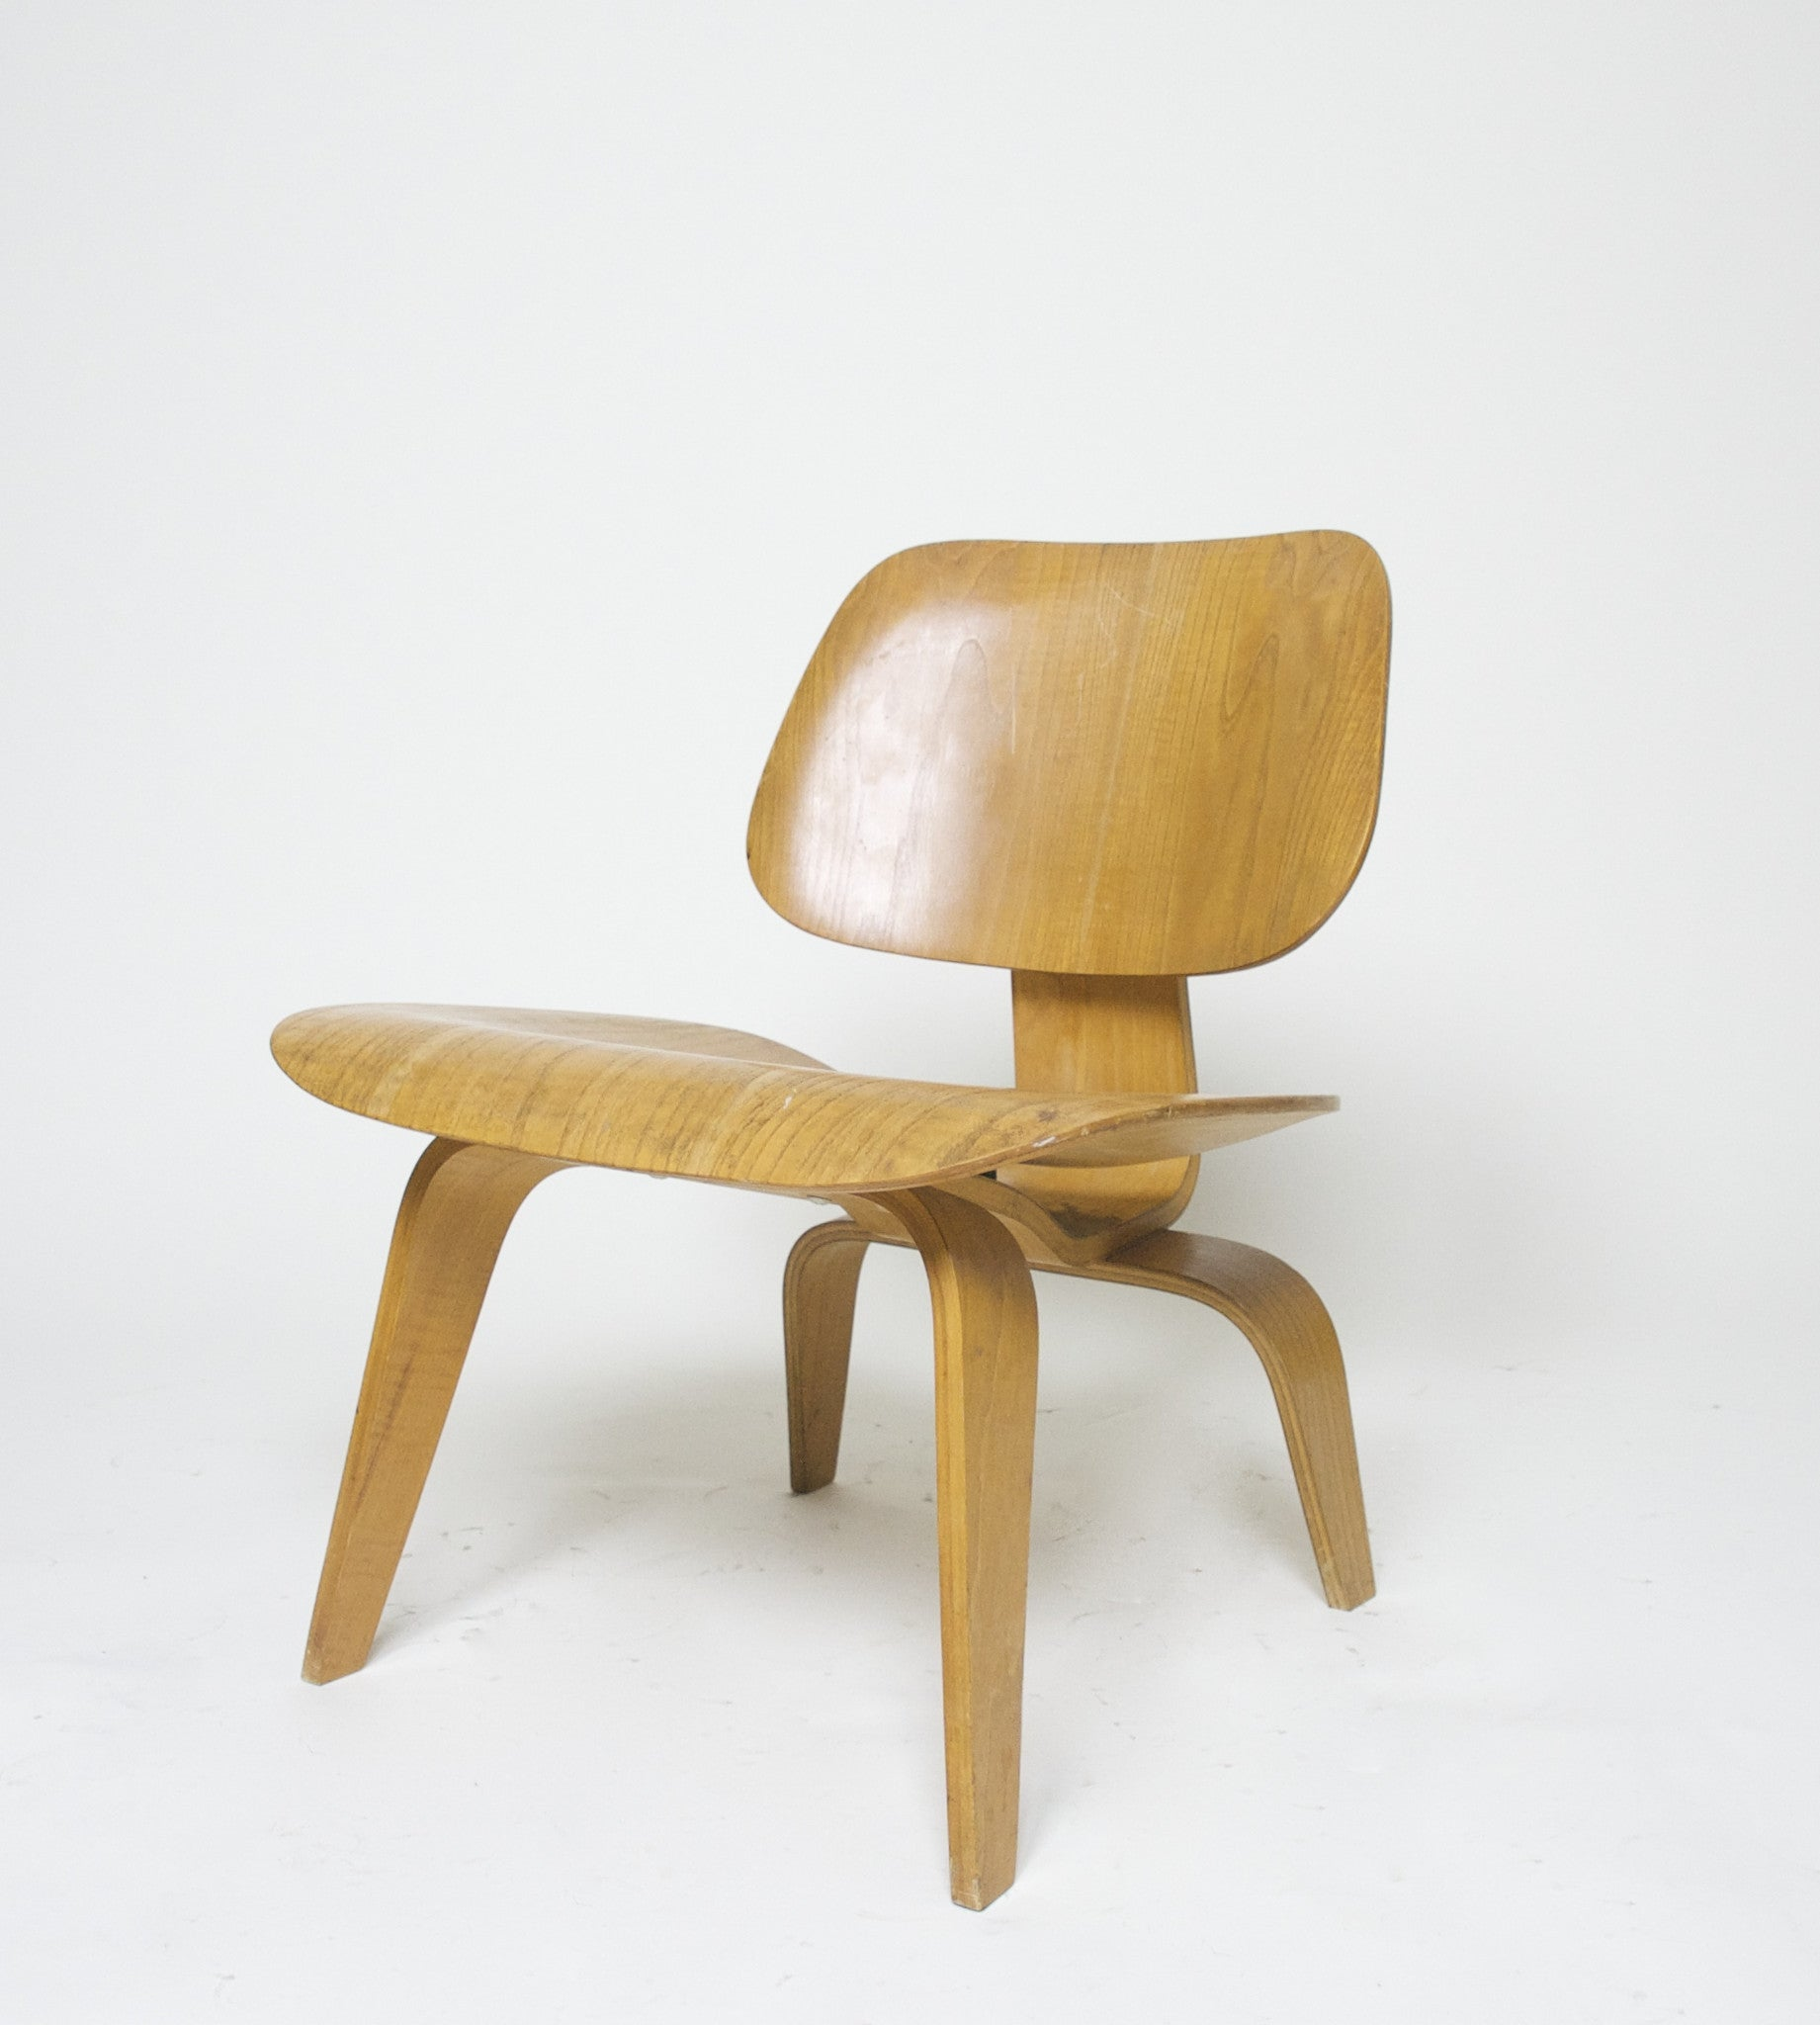 SOLD Eames Evans Herman Miller 1948/49 LCW Early Rare Chair, All Original With Label